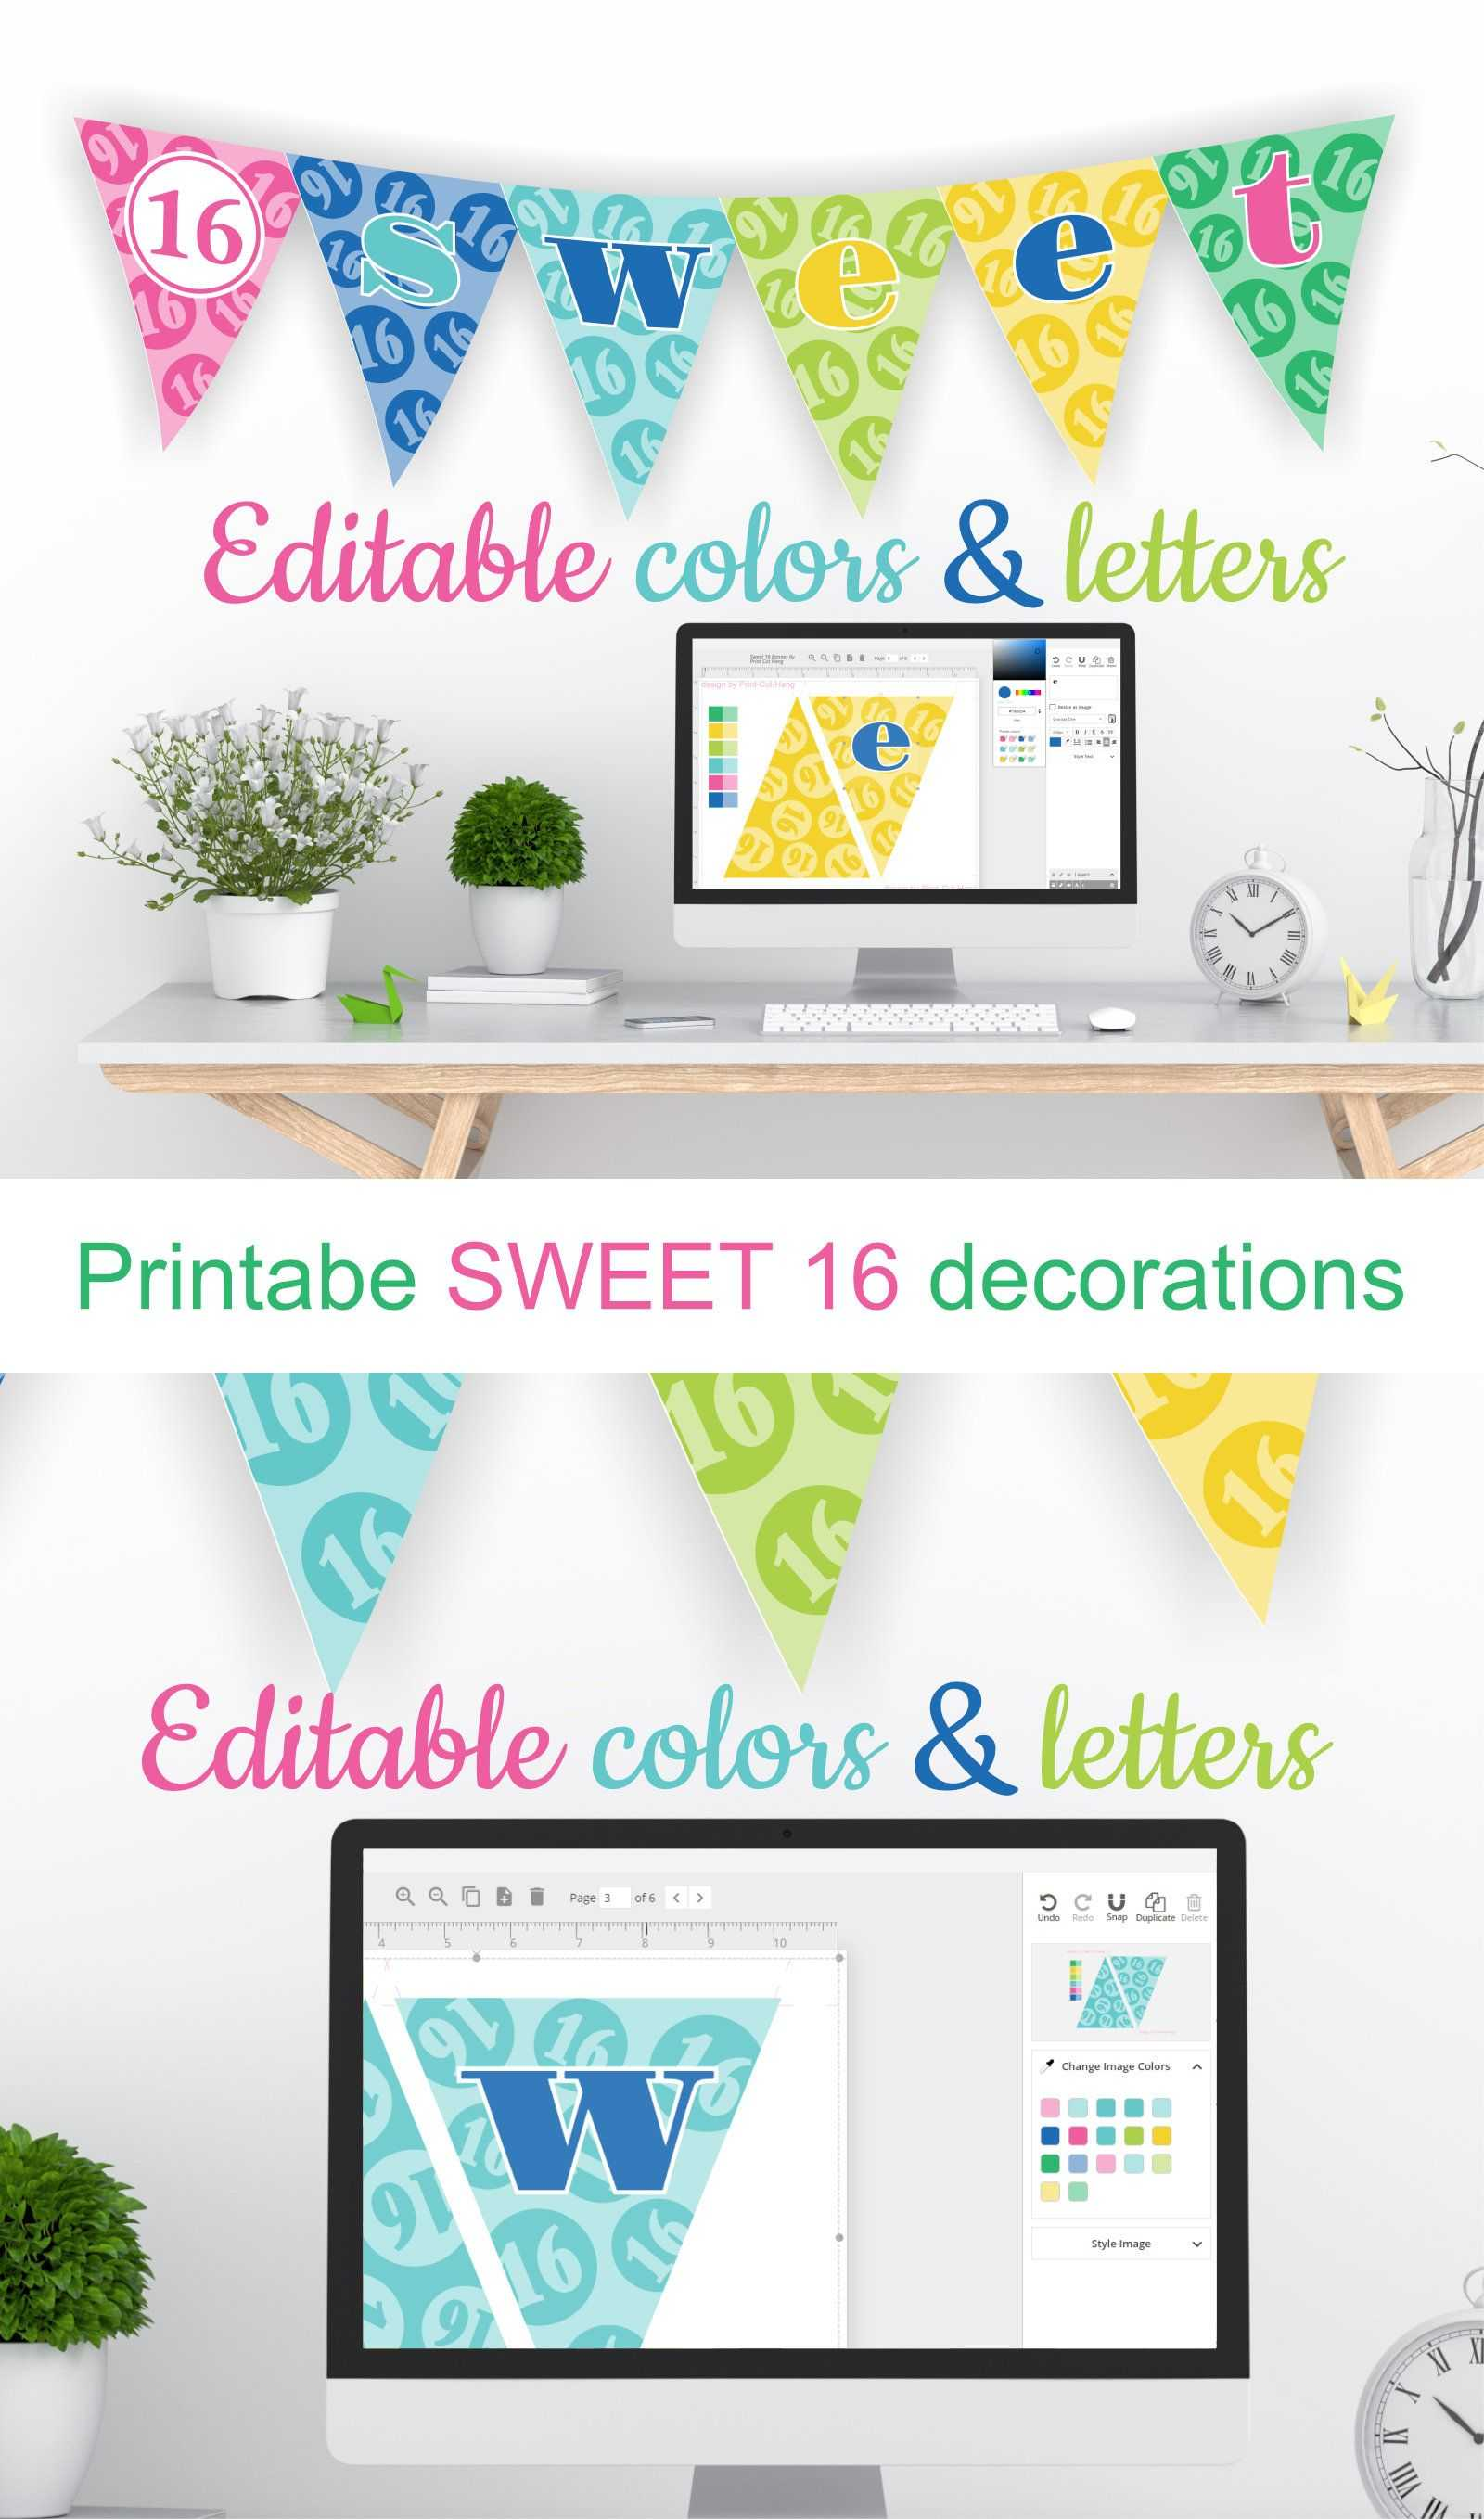 Printable Sweet 16 Decorations - Editable Banner - Customize Throughout Sweet 16 Banner Template